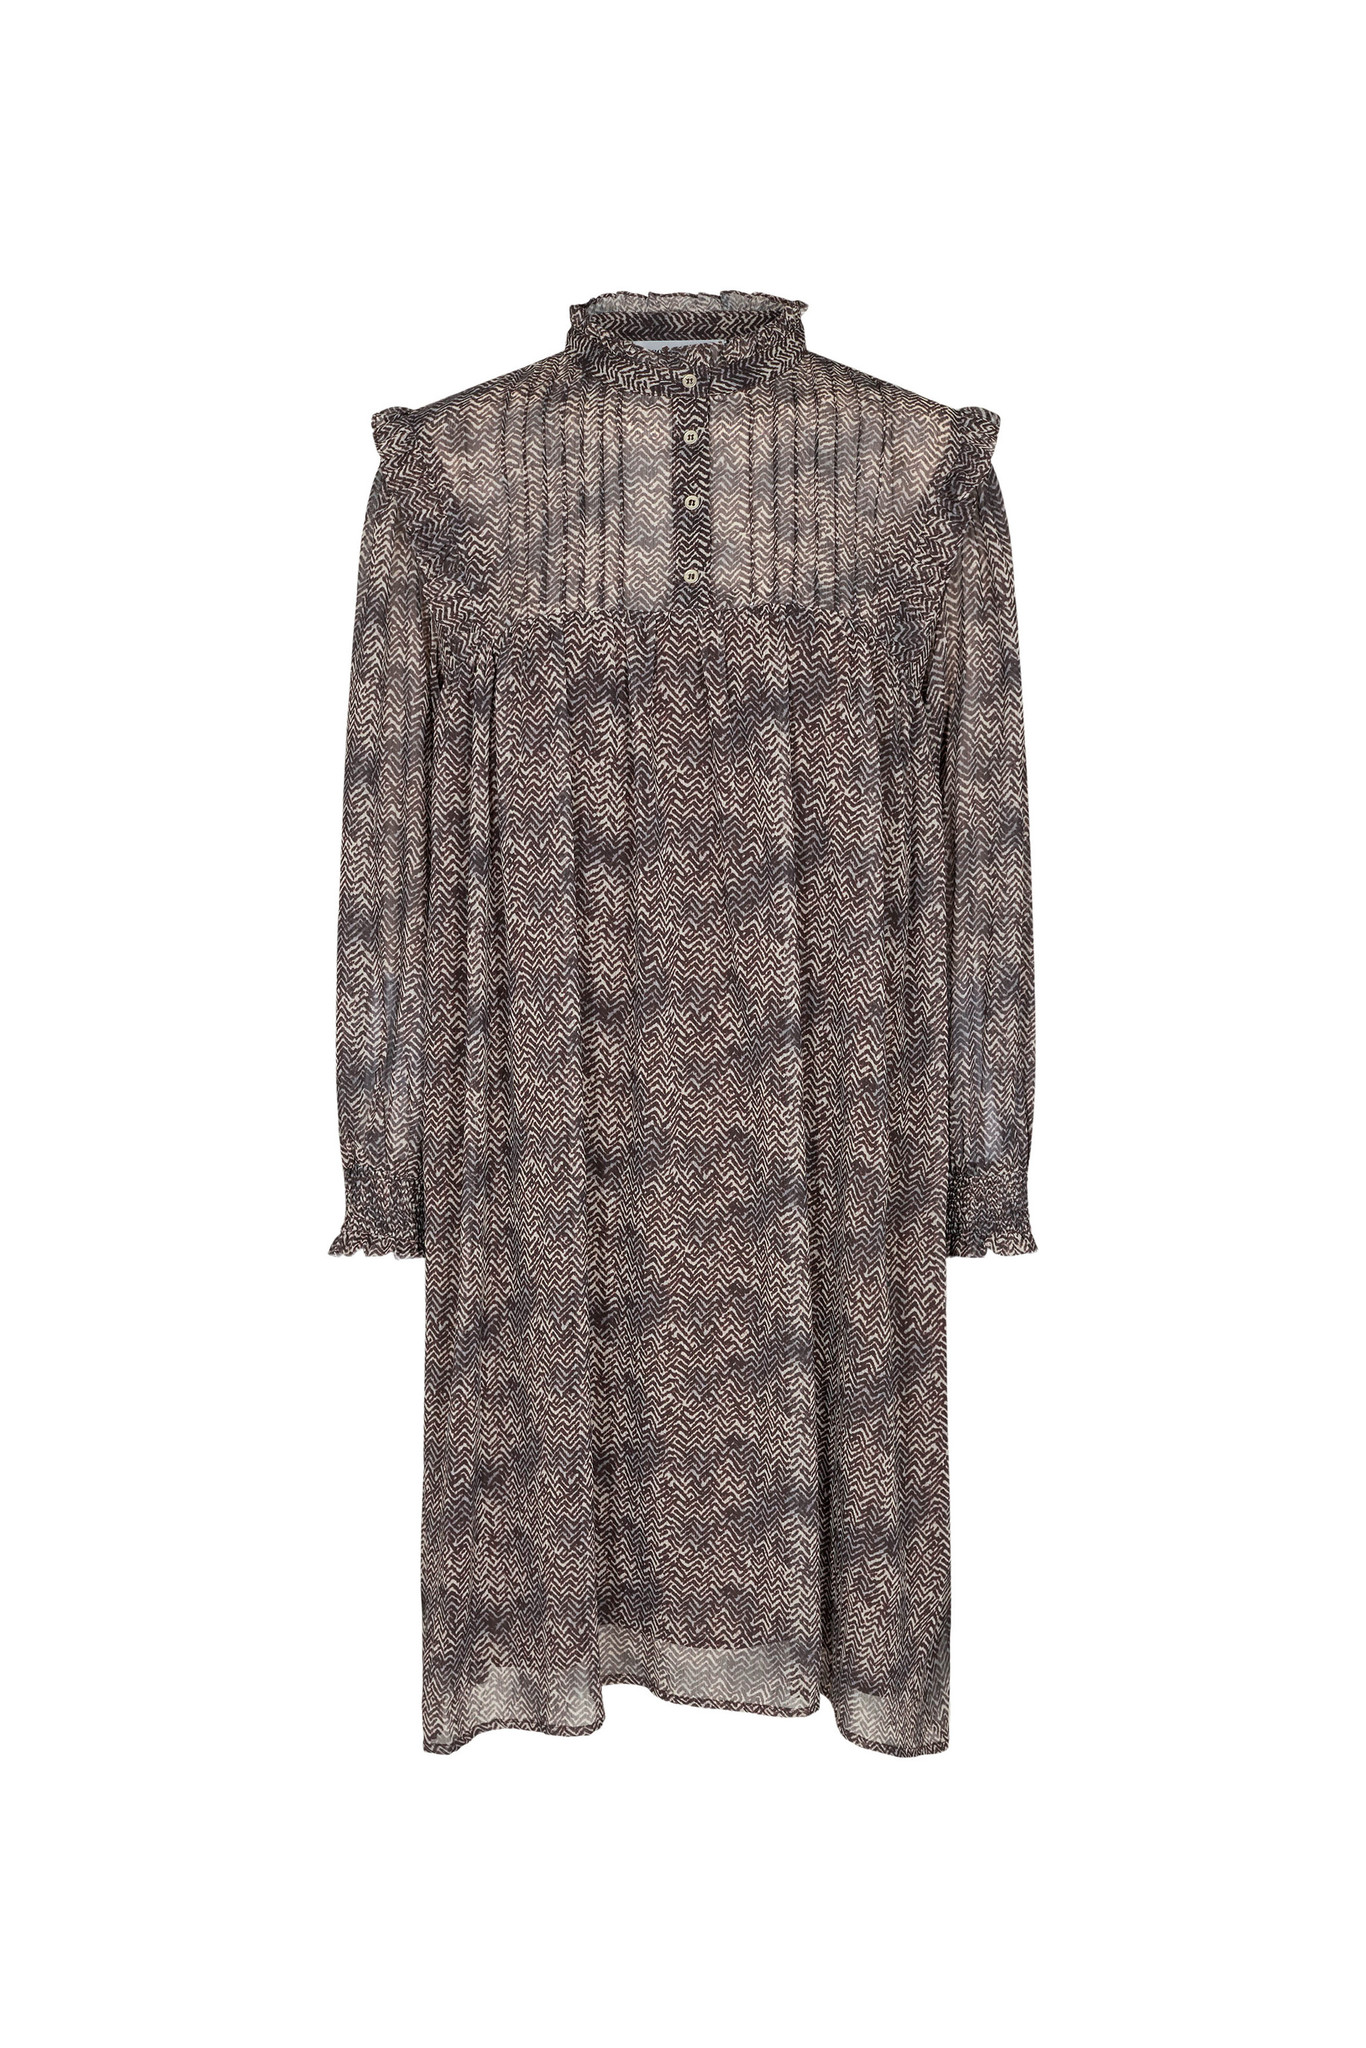 Zorro Tunic Dress - Mocca-1